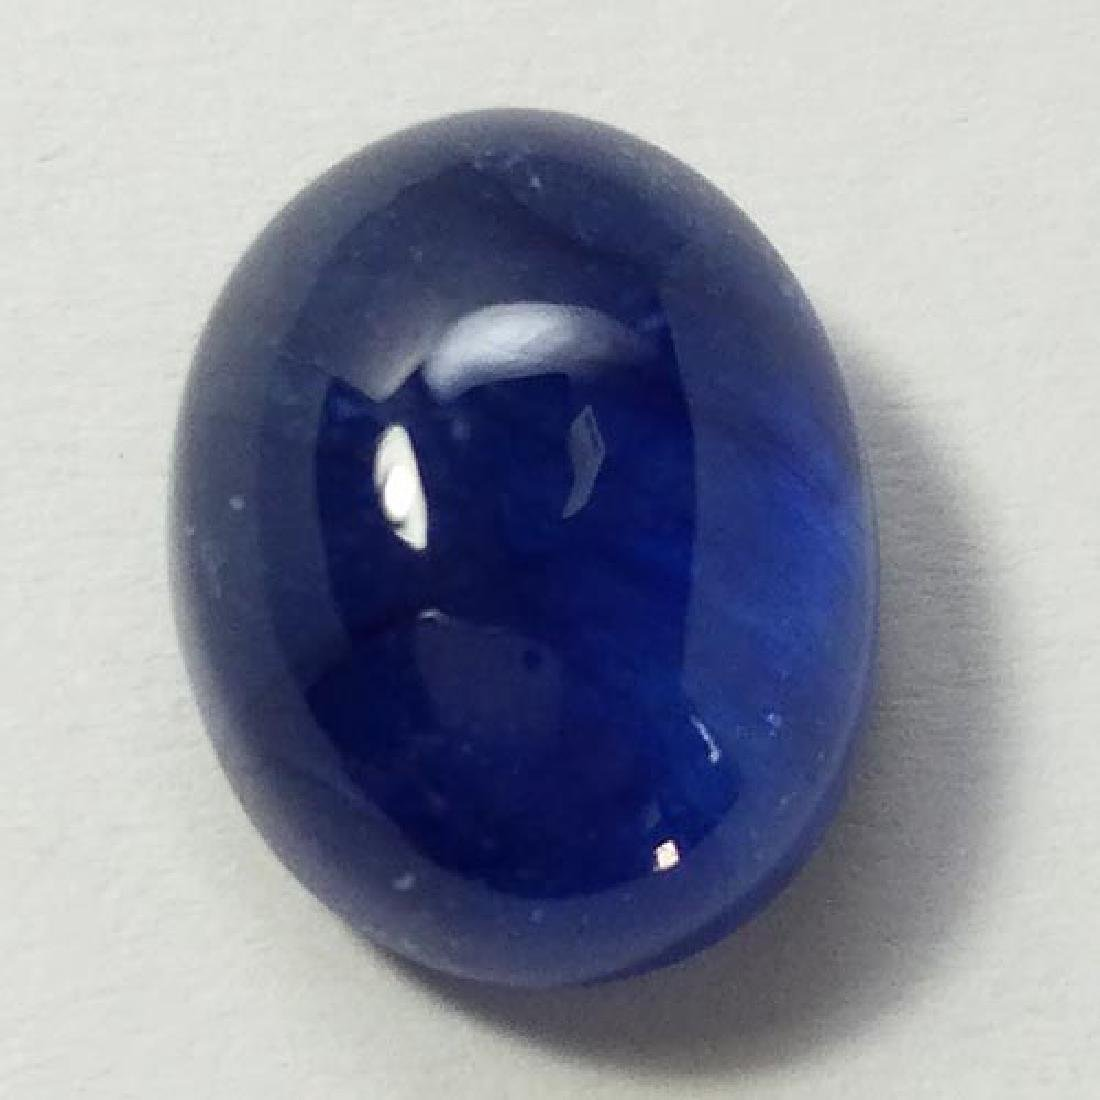 10.20Cts STUNNING LUSTER OVAL BLUE SAPPHIRE GLASS FILL - 3